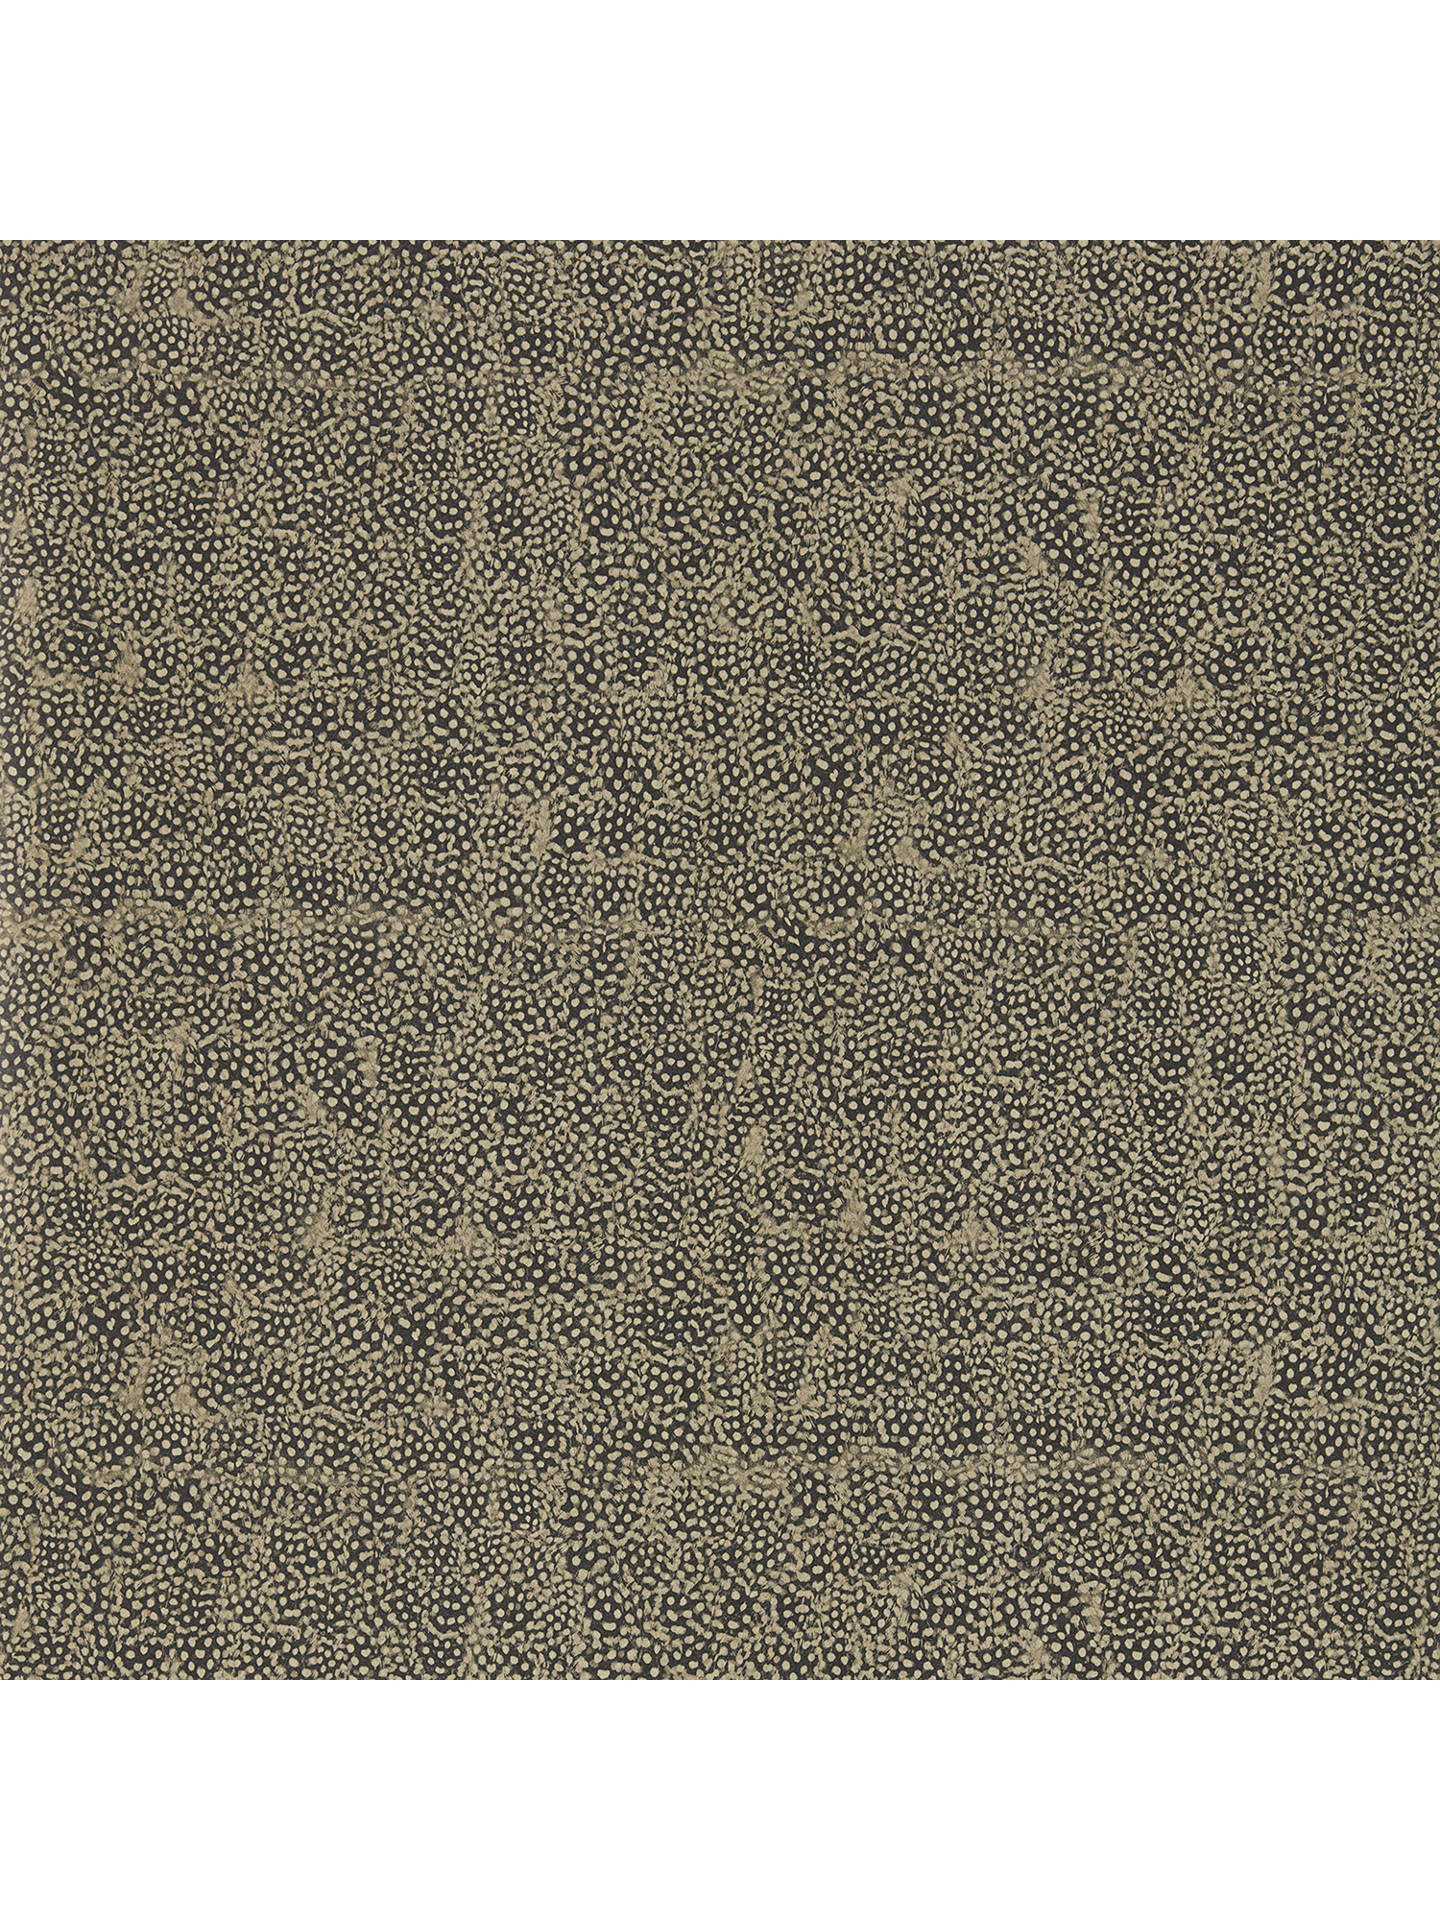 Buy Zoffany Guinea Wallpaper, Sahara ZKEM312647 Online at johnlewis.com